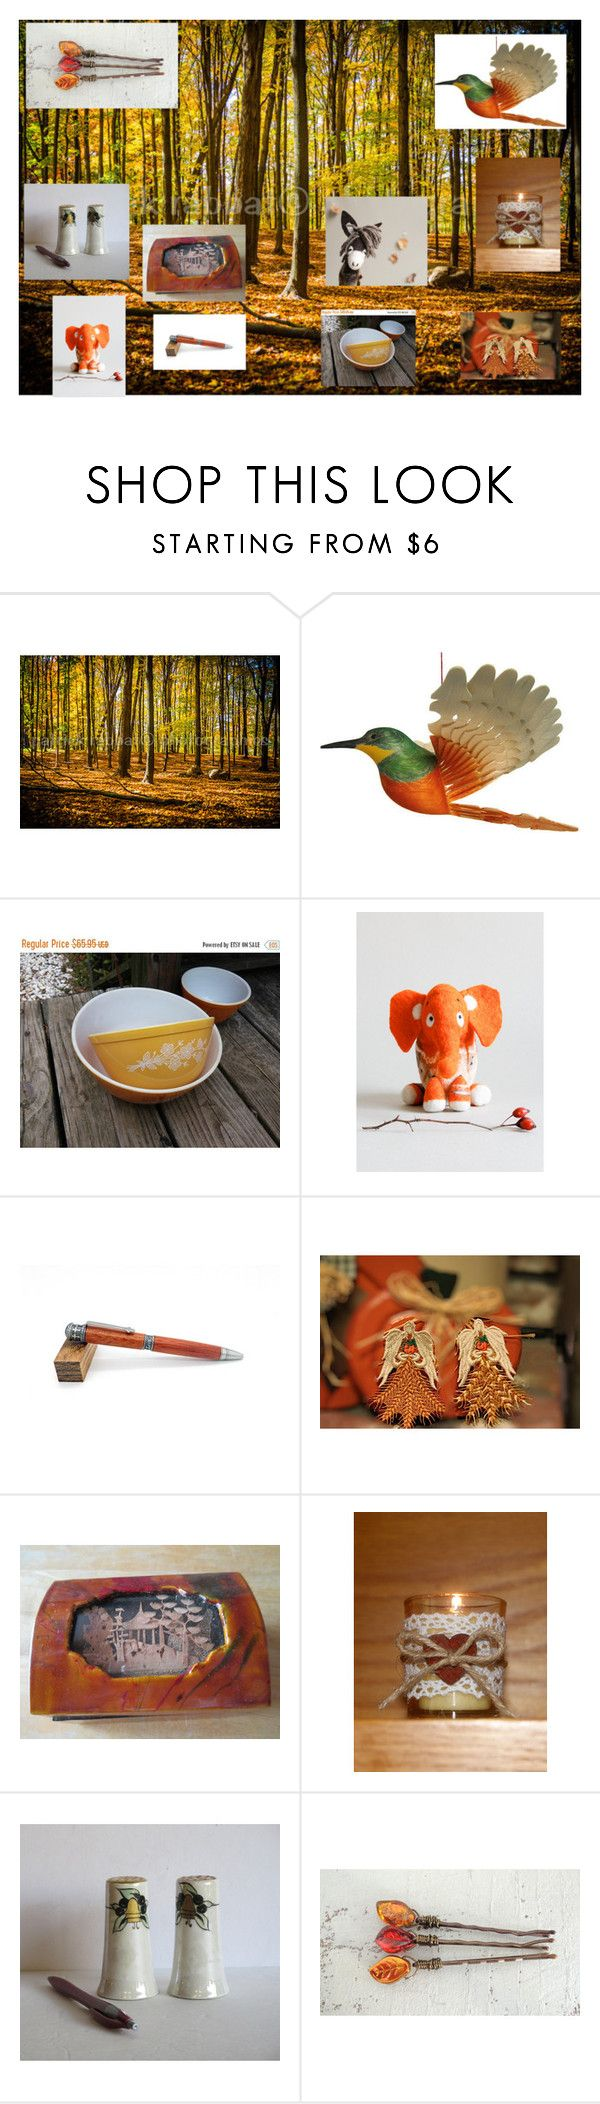 """""""Happy Thanksgiving, Canada"""" by rocky-springs-vintage ❤ liked on Polyvore featuring interior, interiors, interior design, home, home decor, interior decorating and Pyrex"""